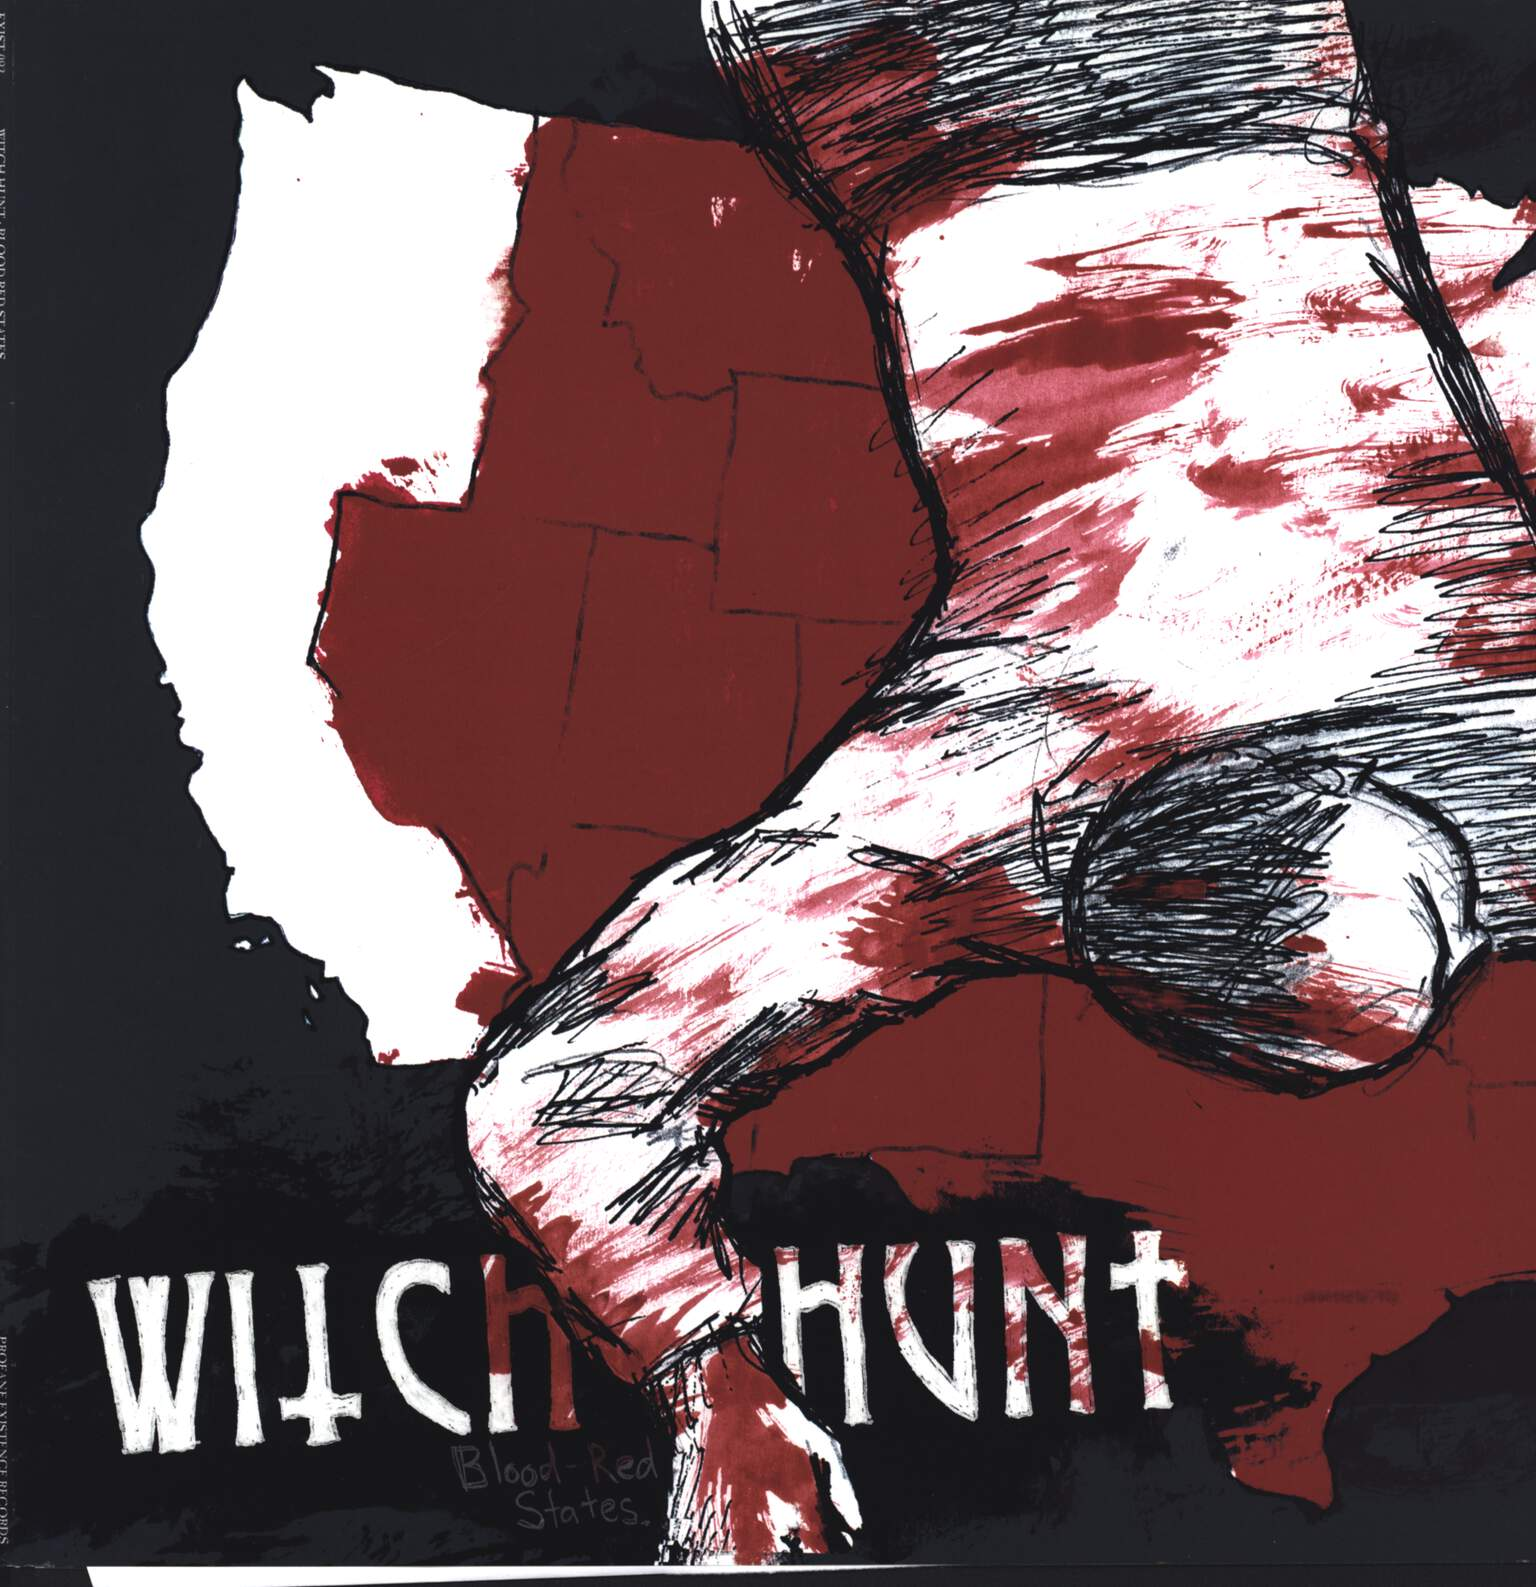 Witch Hunt: Blood-Red States, LP (Vinyl)